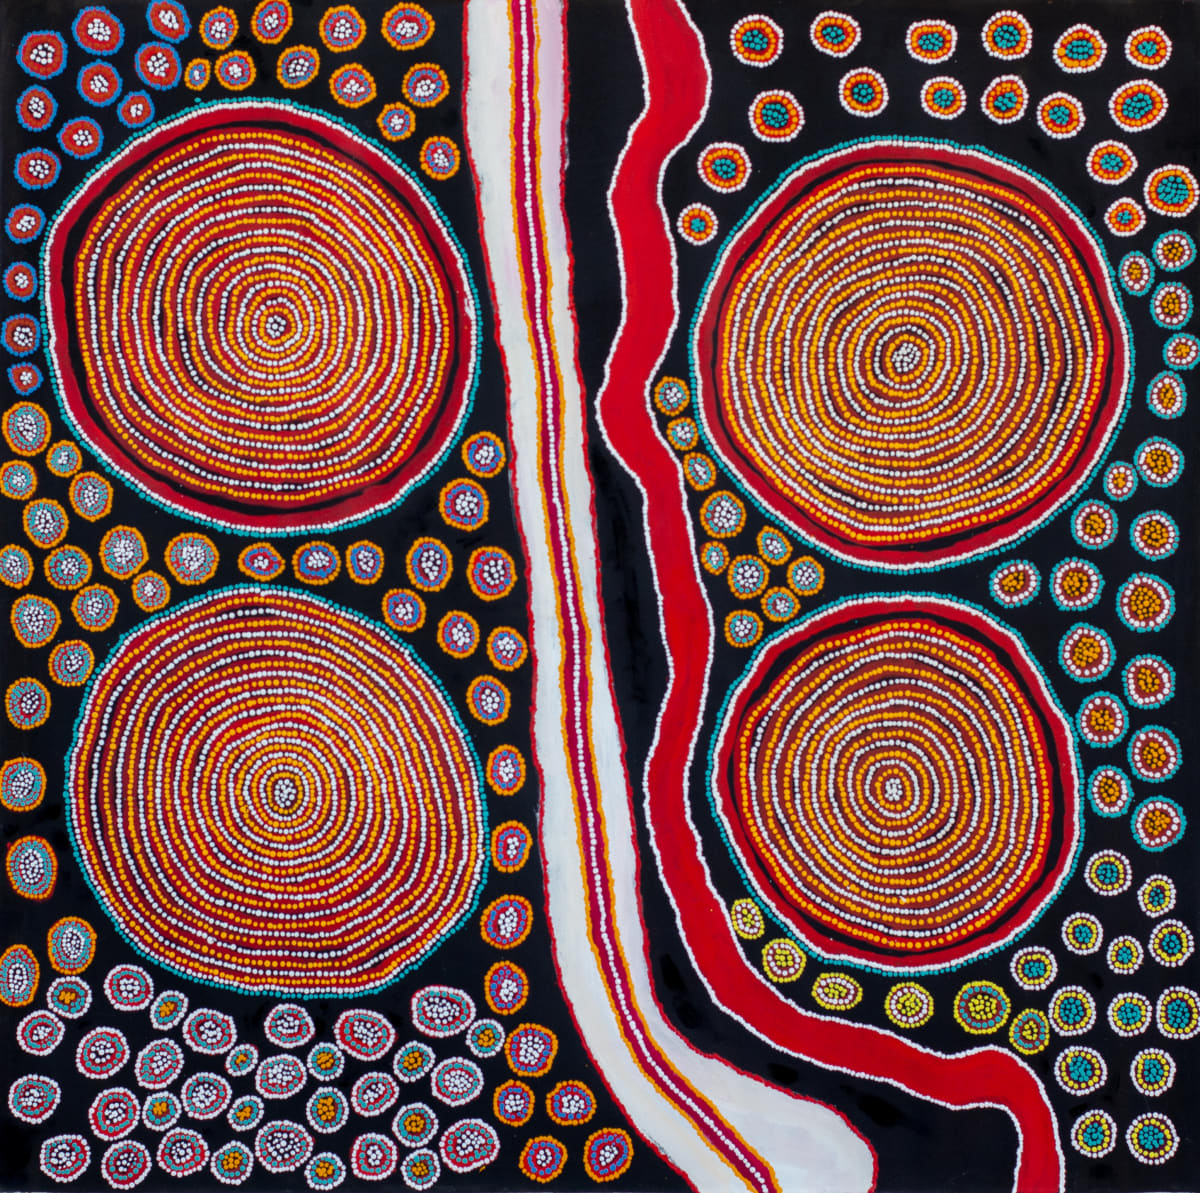 Lennard Walker Purpurmunu Kuru Ala, 2018 Acrylic on linen 137 x 140 cm